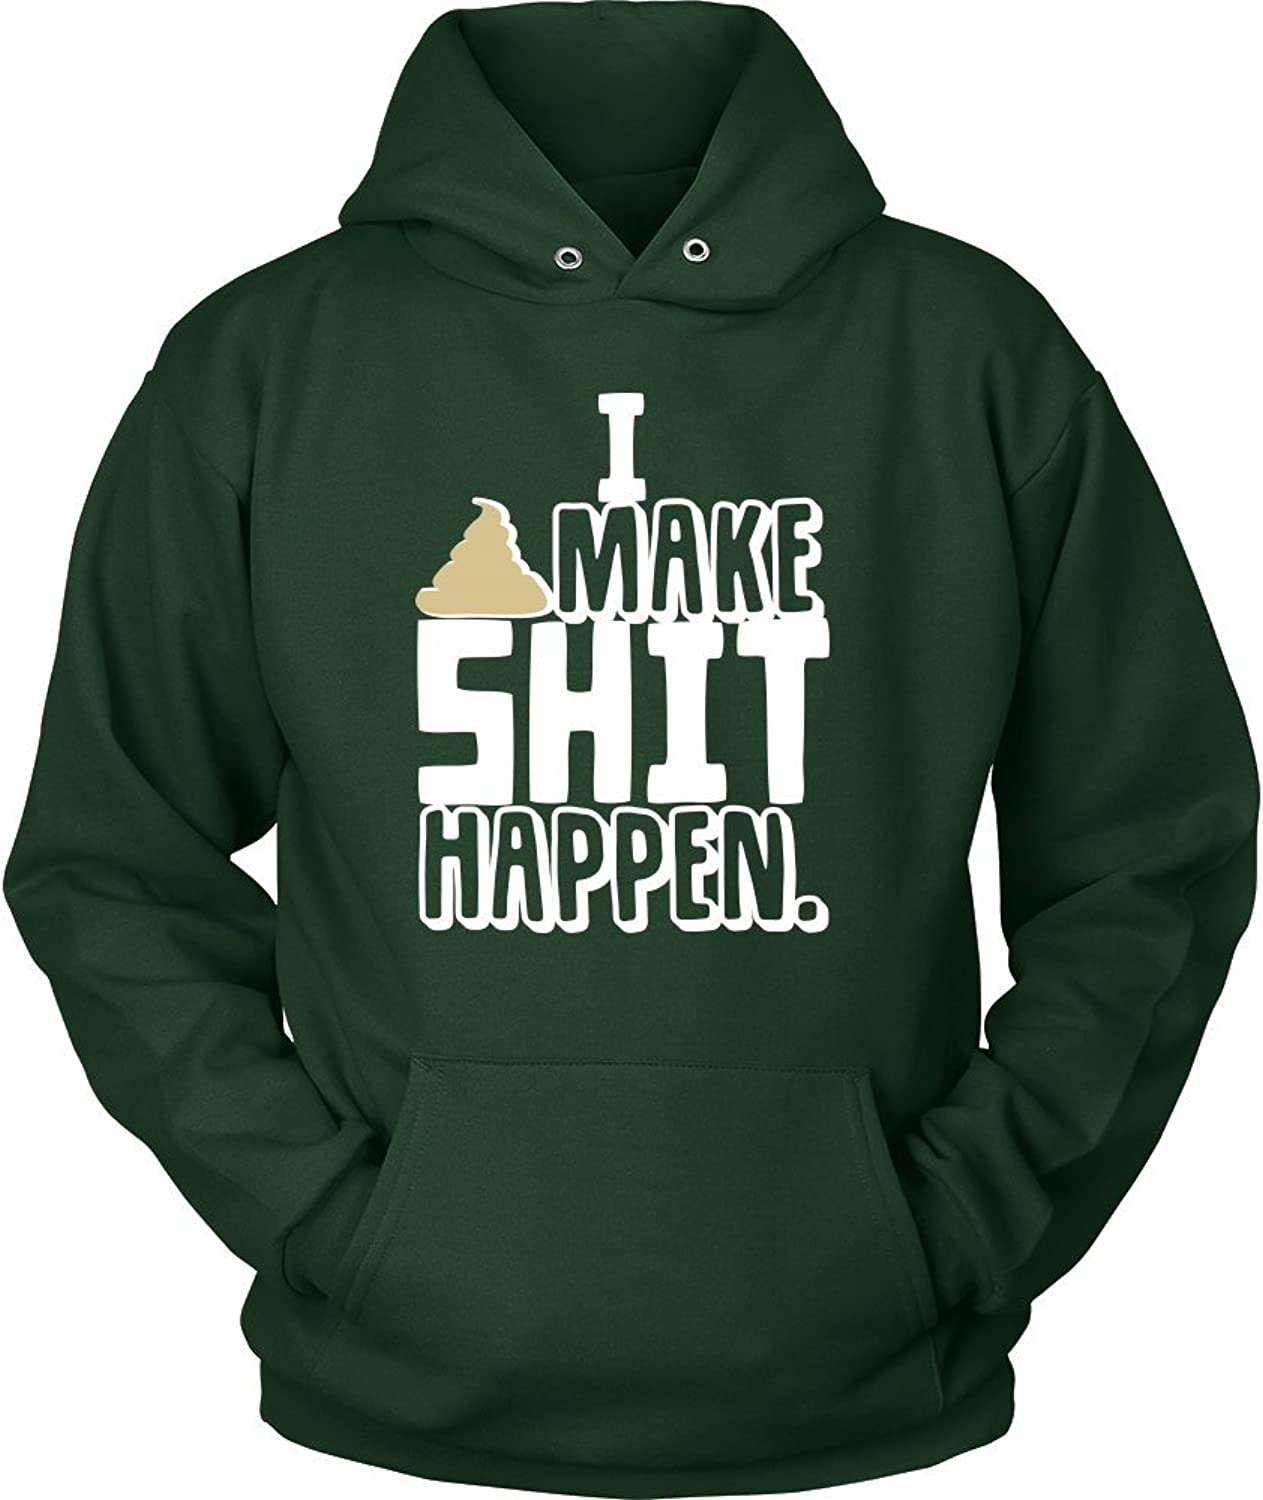 I Make Shit Happen' Quote On Funny Hoodie for Men and Women